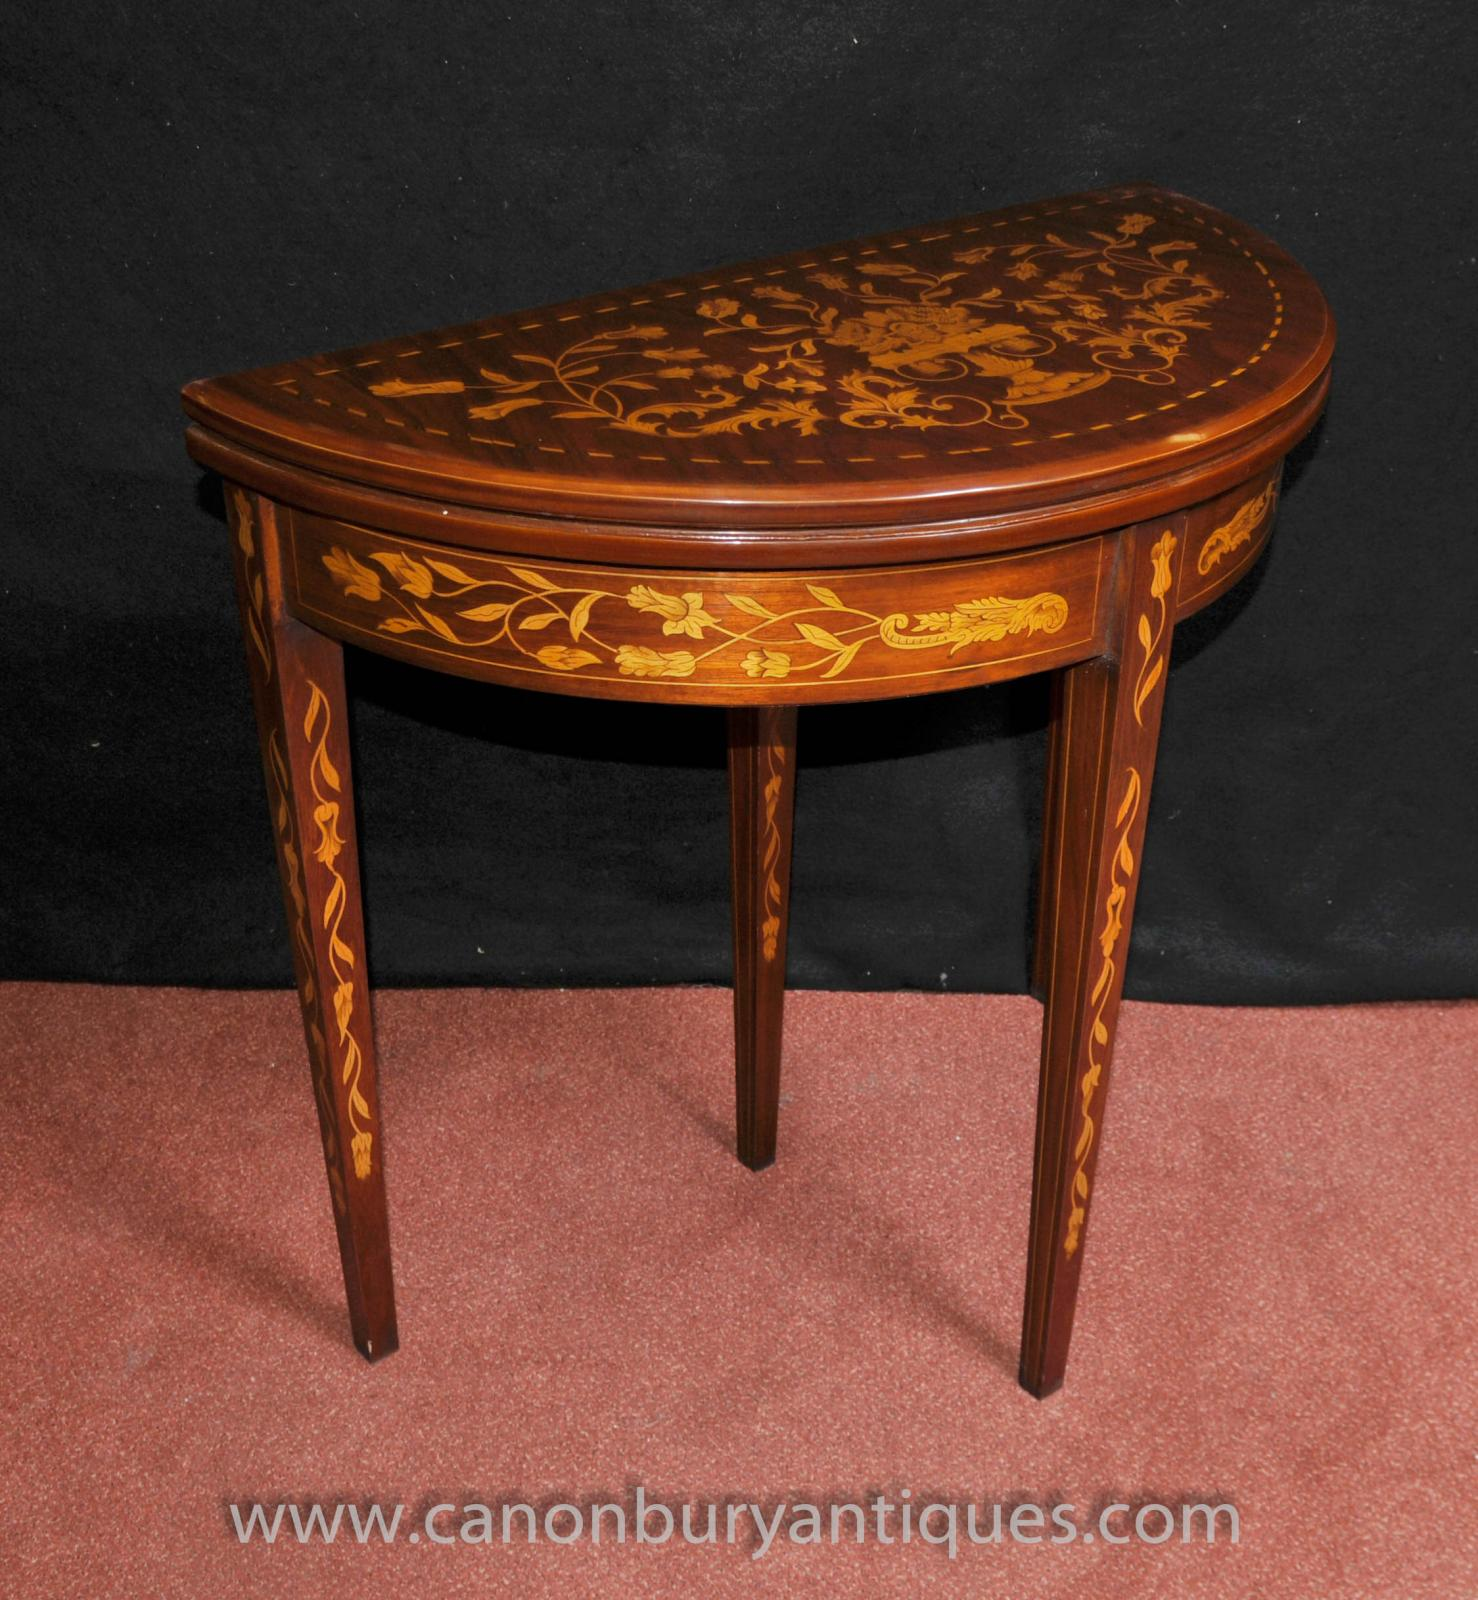 Sheraton card console table demi lune mahogany inlay ebay for Table demi lune extensible